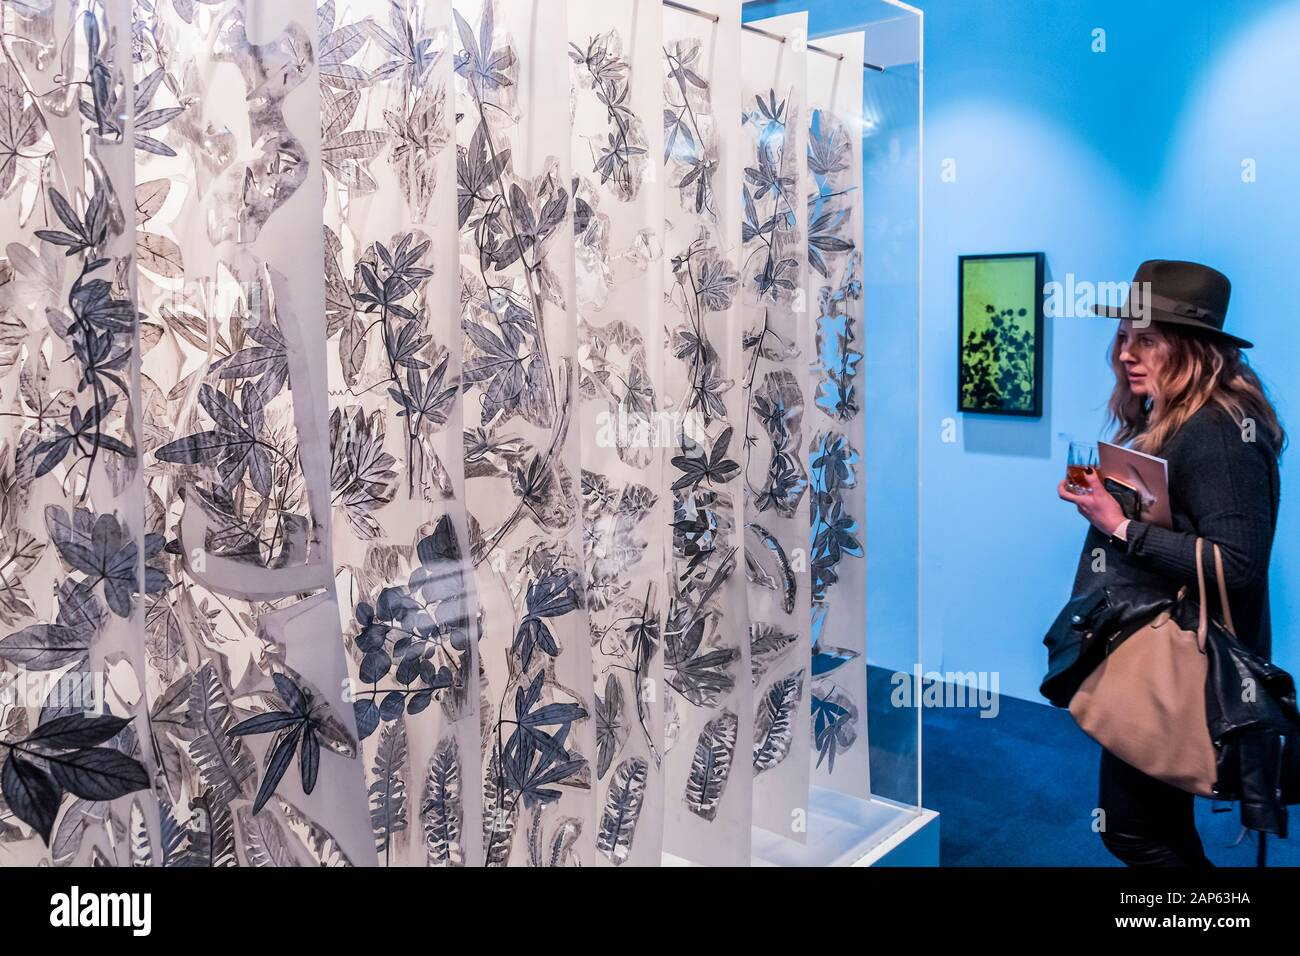 Islington, London, UK. 21st Jan, 2020. Traces of Passion by Jack Milroy, in Art First - The London Art Fair, at the Business Design Centre in Islington. Includes international galleries selling modern and contemporary artworks. Credit: Guy Bell/Alamy Live News Stock Photo